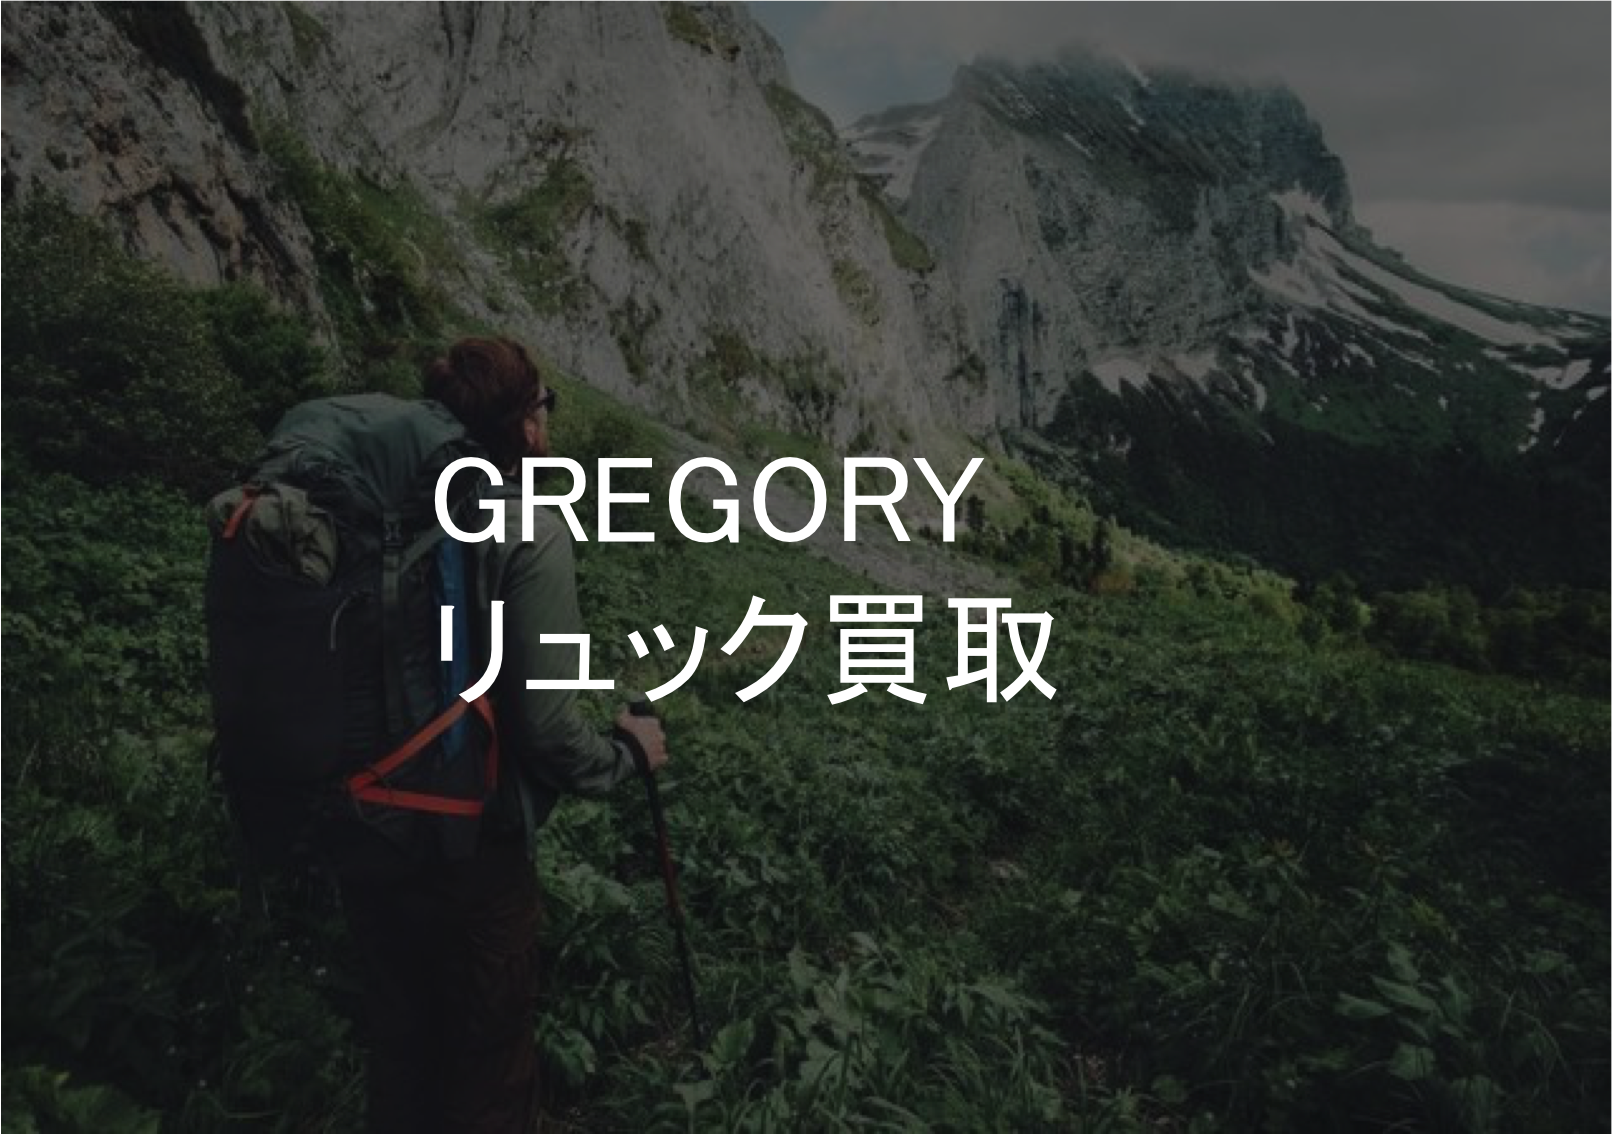 GREGORY(グレゴリー)リュックサック/バックパック買取なら!